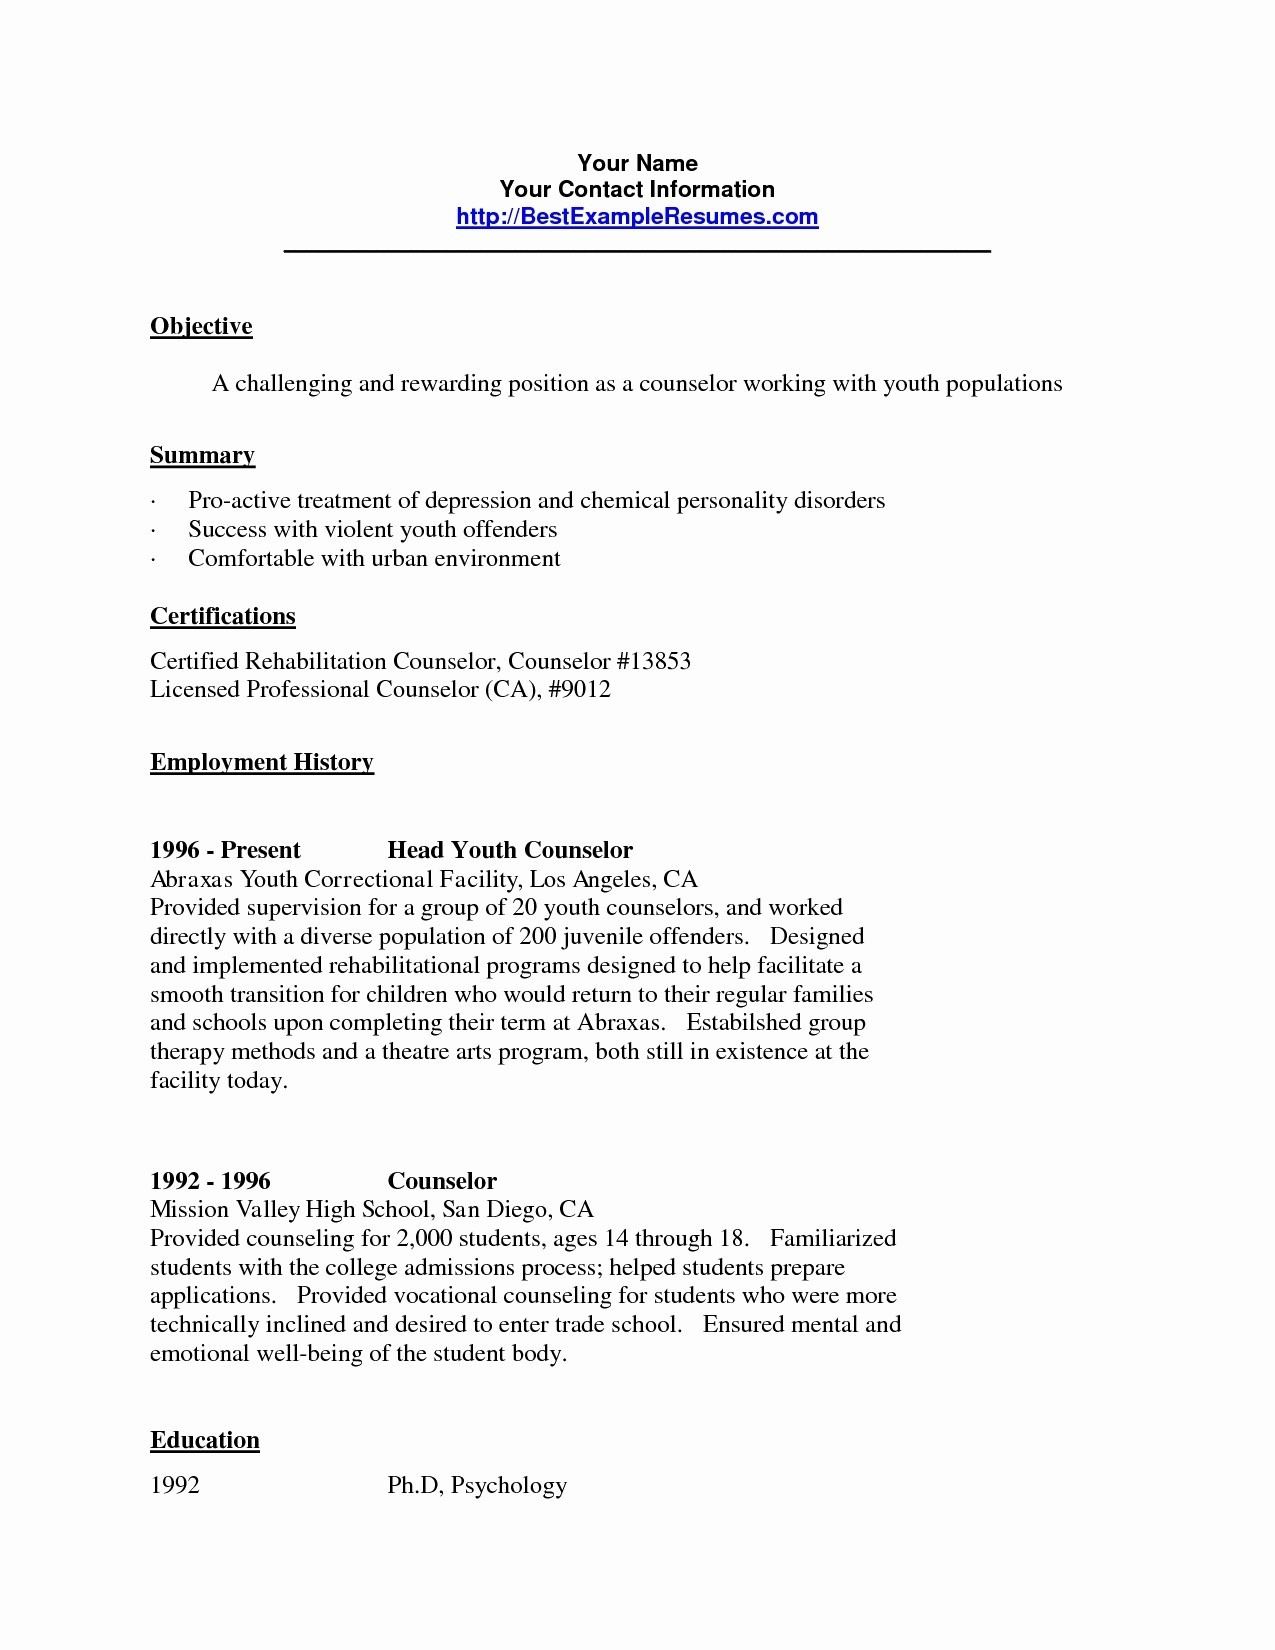 School Counselor Resume - Guidance Counselor Cover Letter Refrence Camp Counselor Resume